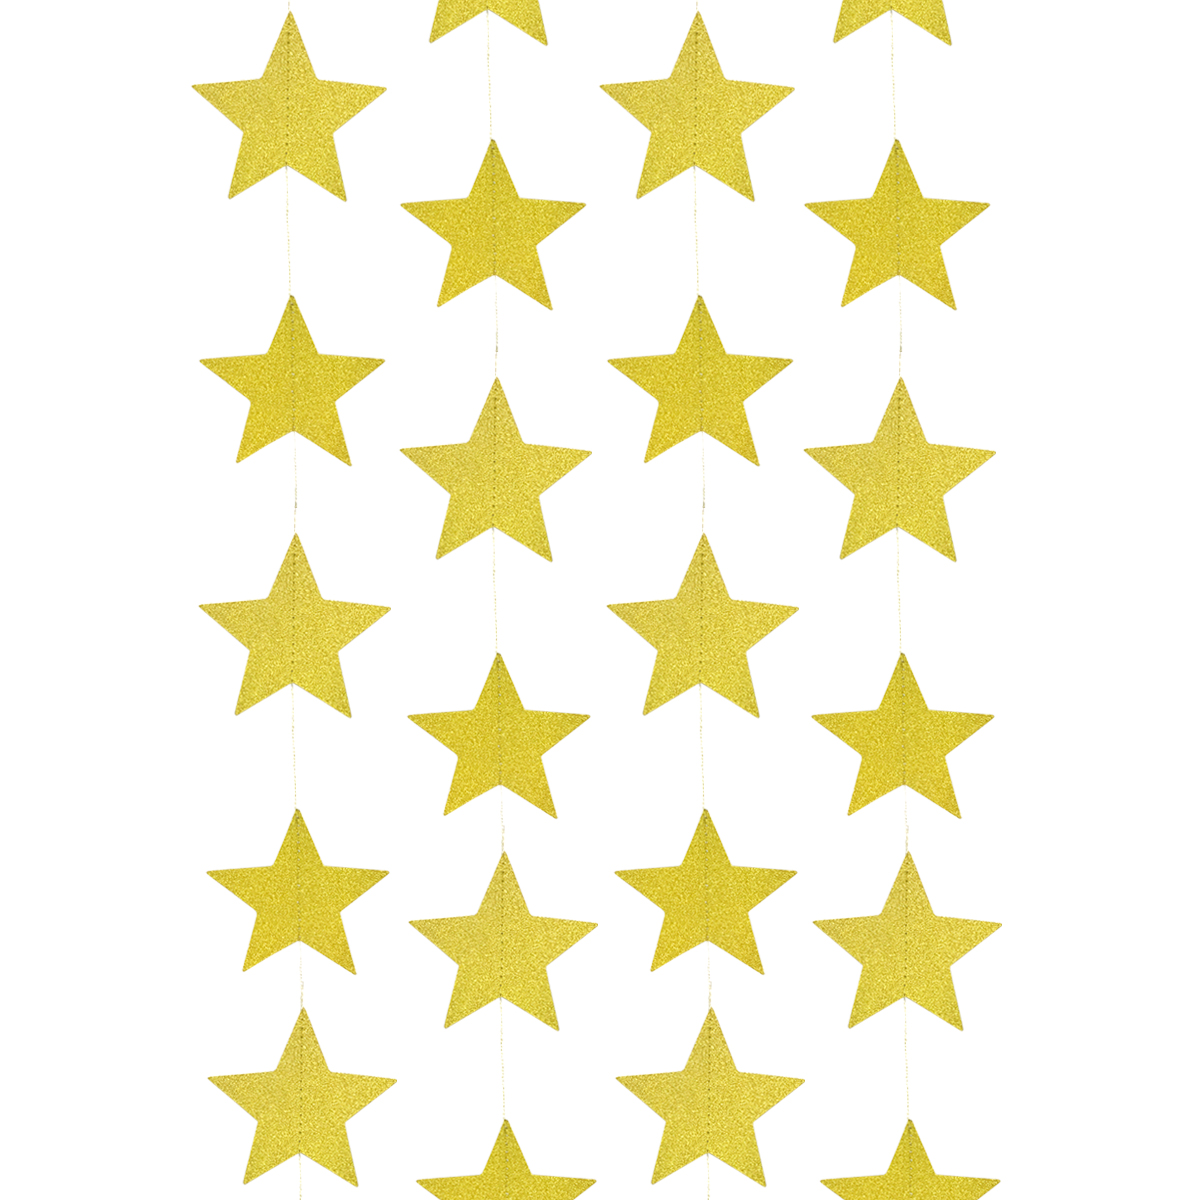 Wrapables® 26ft Total Paper Star Garland Party Decorations for Weddings, Birthday Parties, Baby Showers, and Nursery Décor (Set of 2), Gold Shimmer